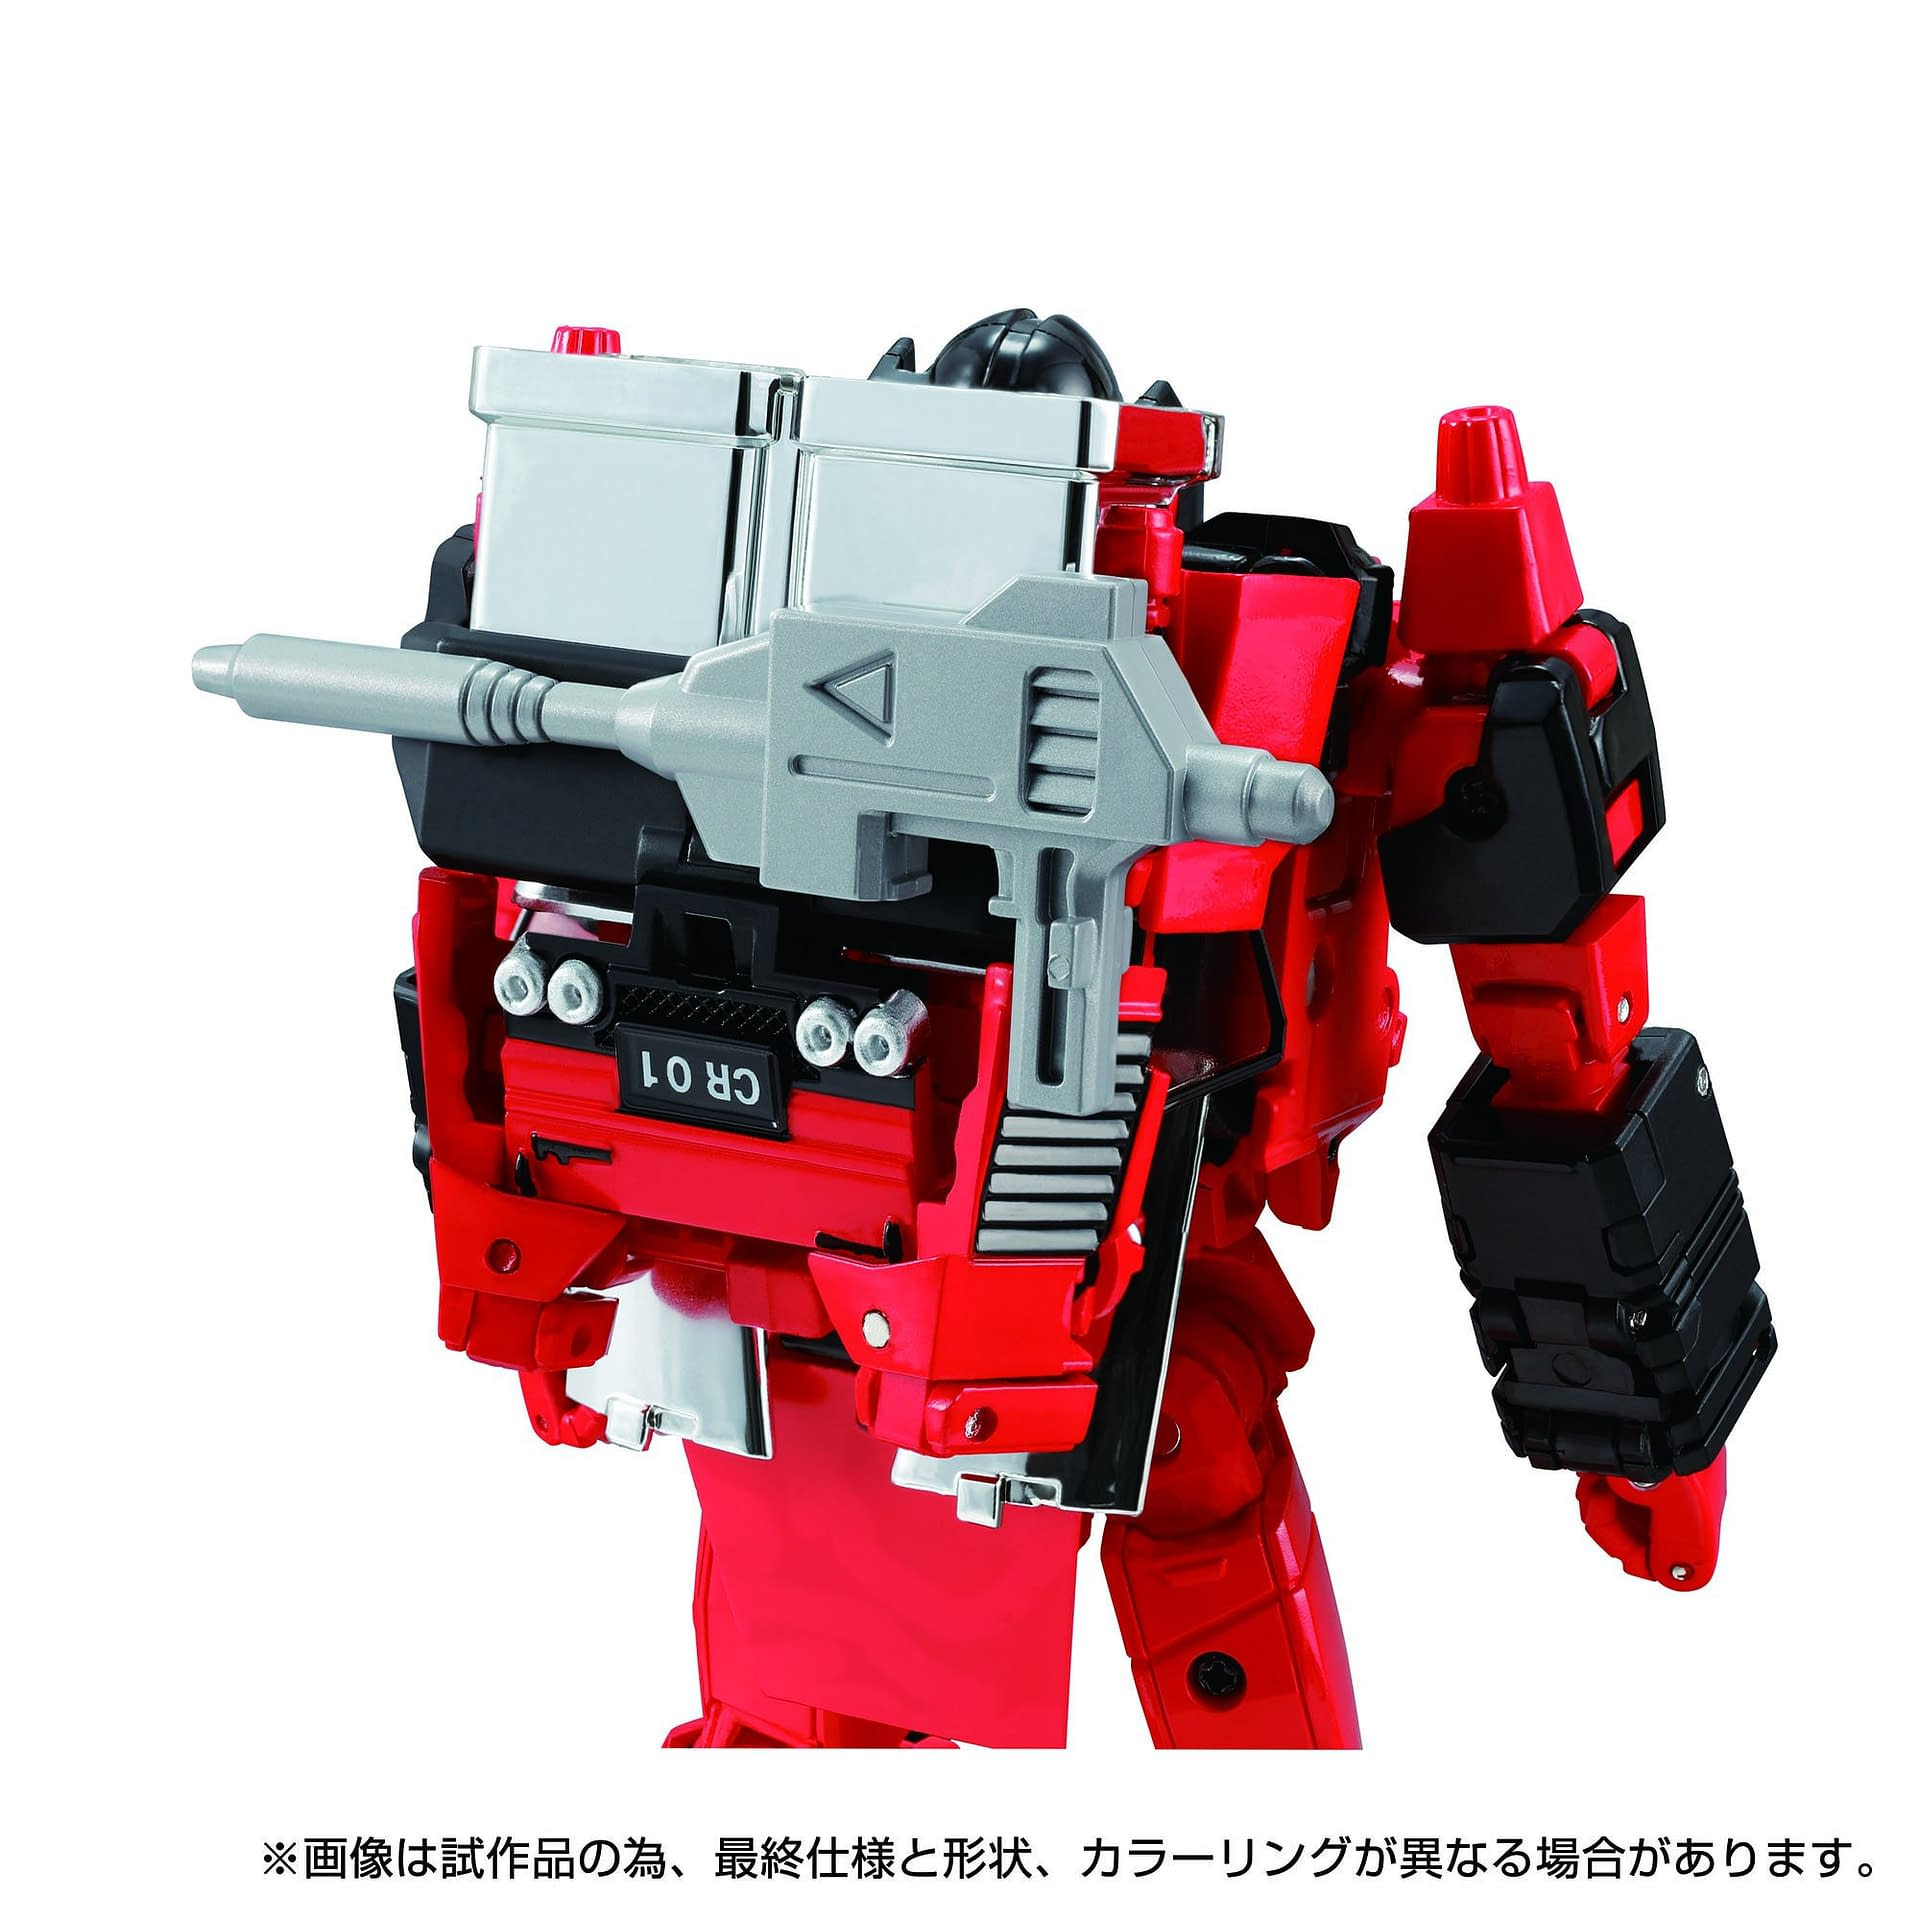 Transformers Takara Tomy Masterpiece MP-39+ Spinout Pre-order $114.99